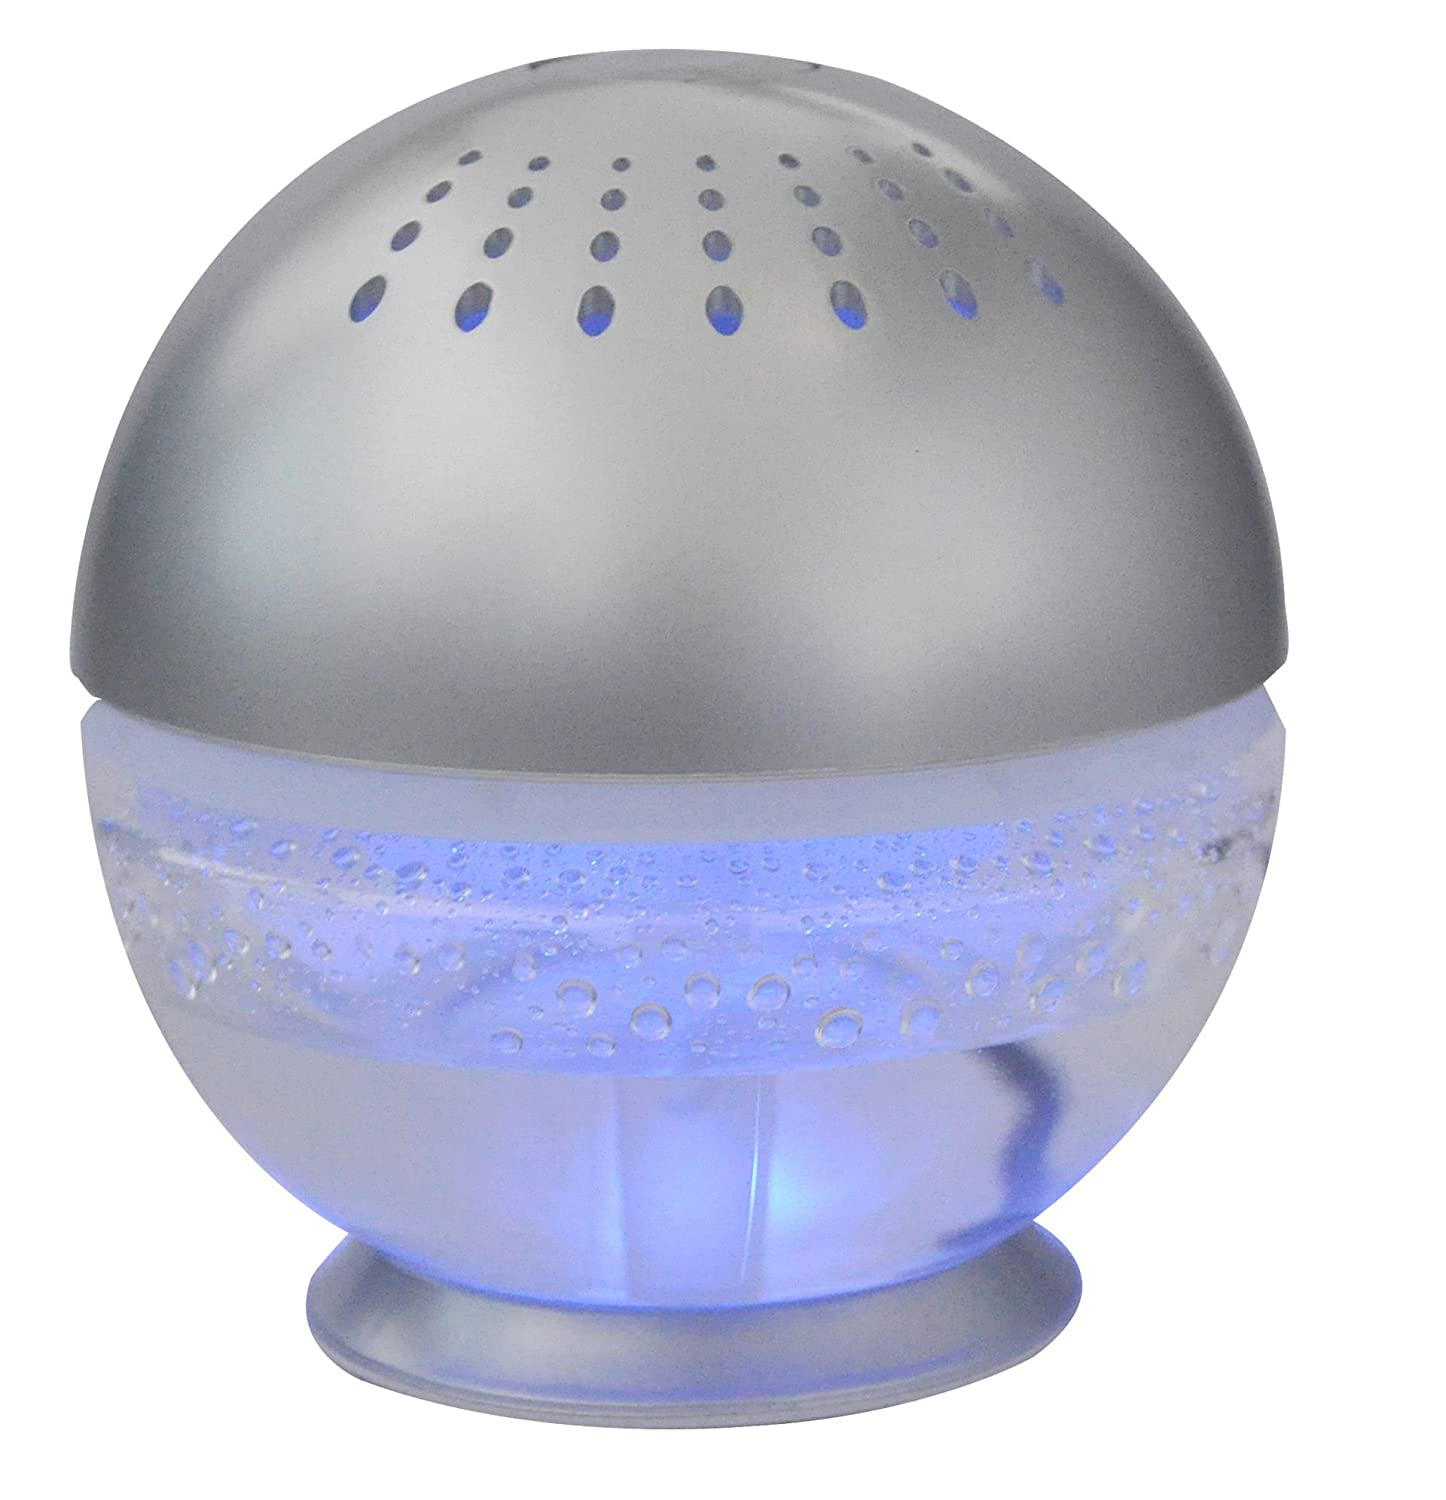 EcoGecko 75518 Little Squirt Air Cleaner and Revitalizer, Silver